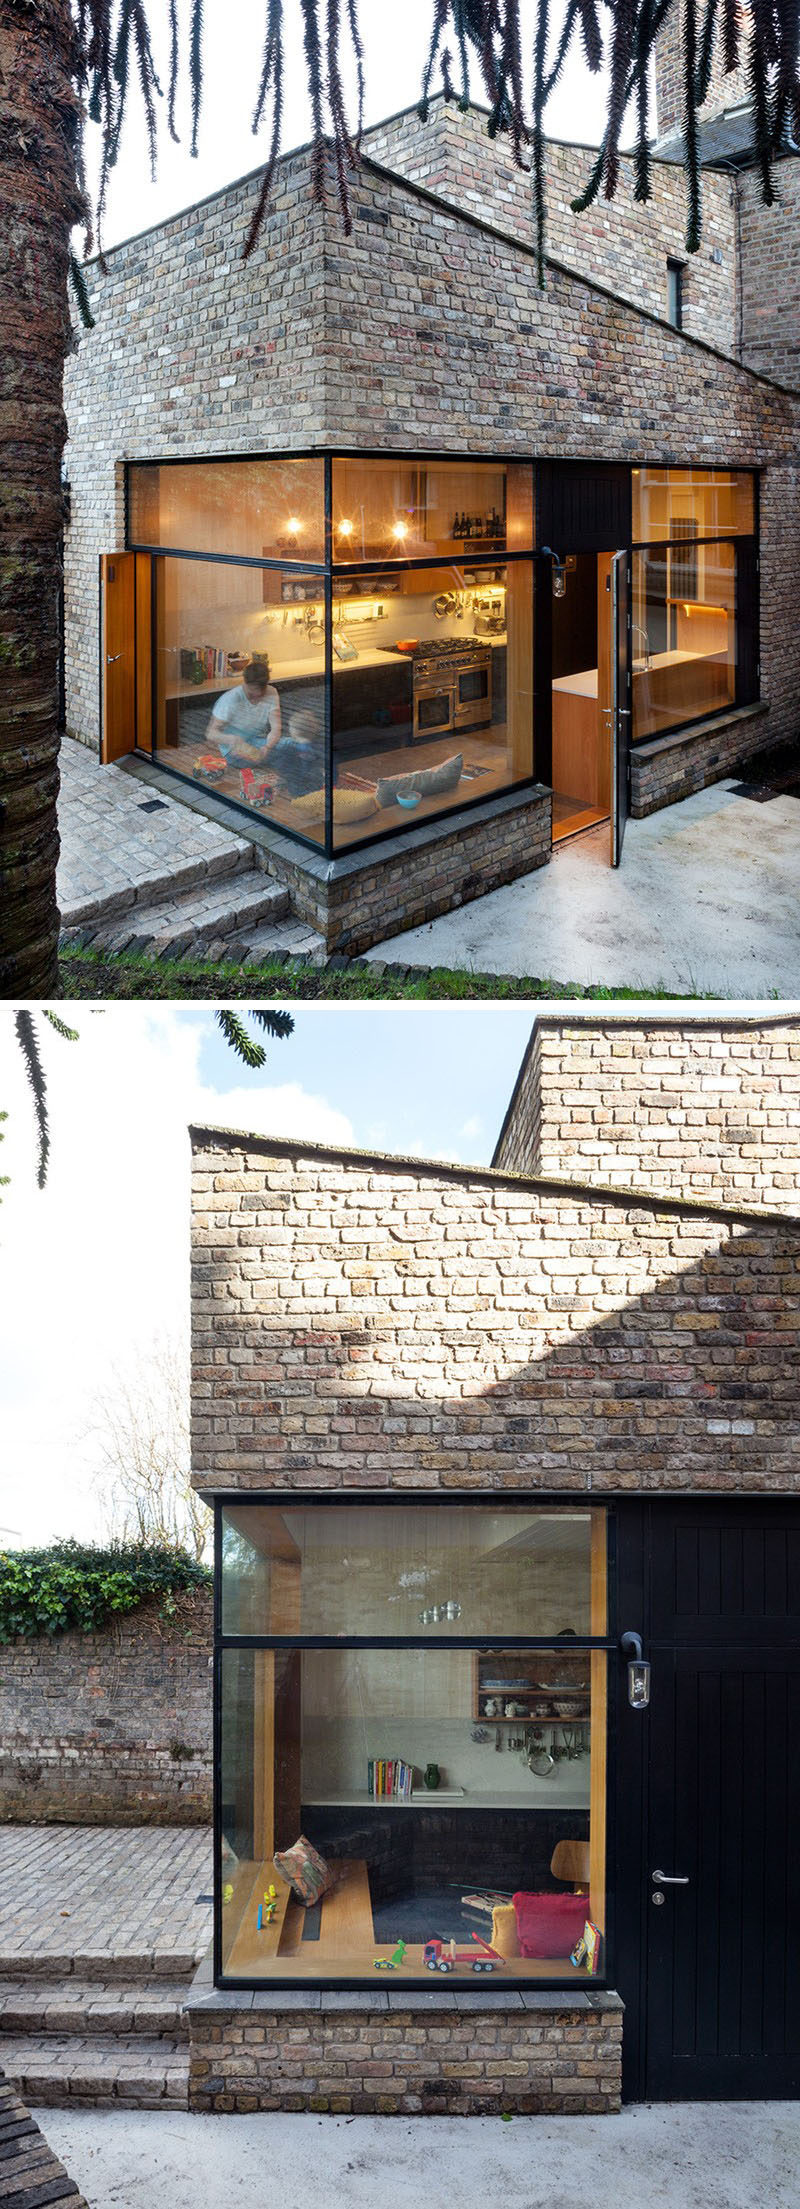 This brick extension matches the rest of the brick exterior and features large windows to maximize the amount of natural light in the home.